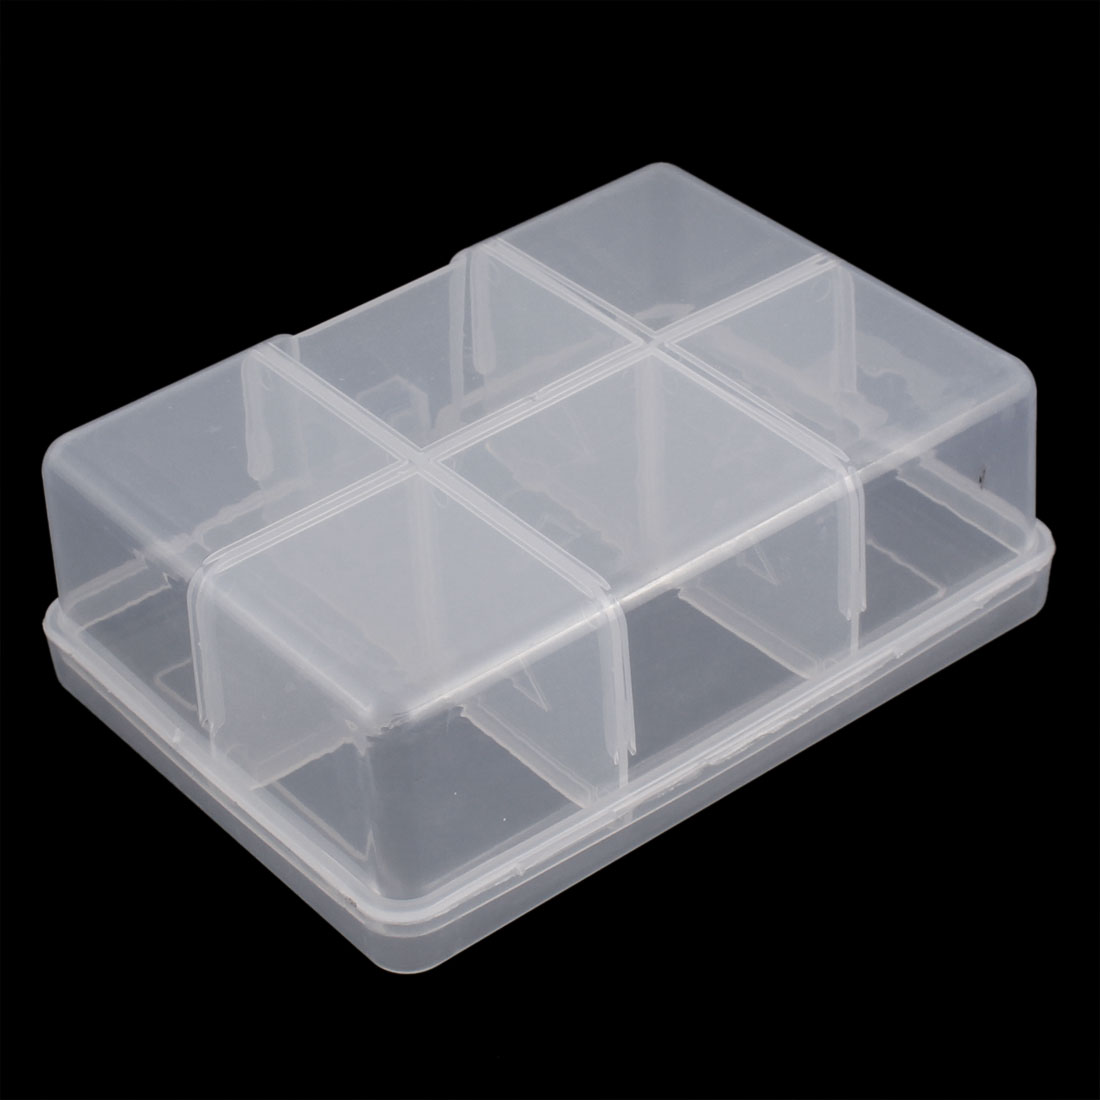 Unique Bargains Jewelry Hardware Plastic 6 Slots Storage Case Box Organizer Conatiner Clear for Home Essential